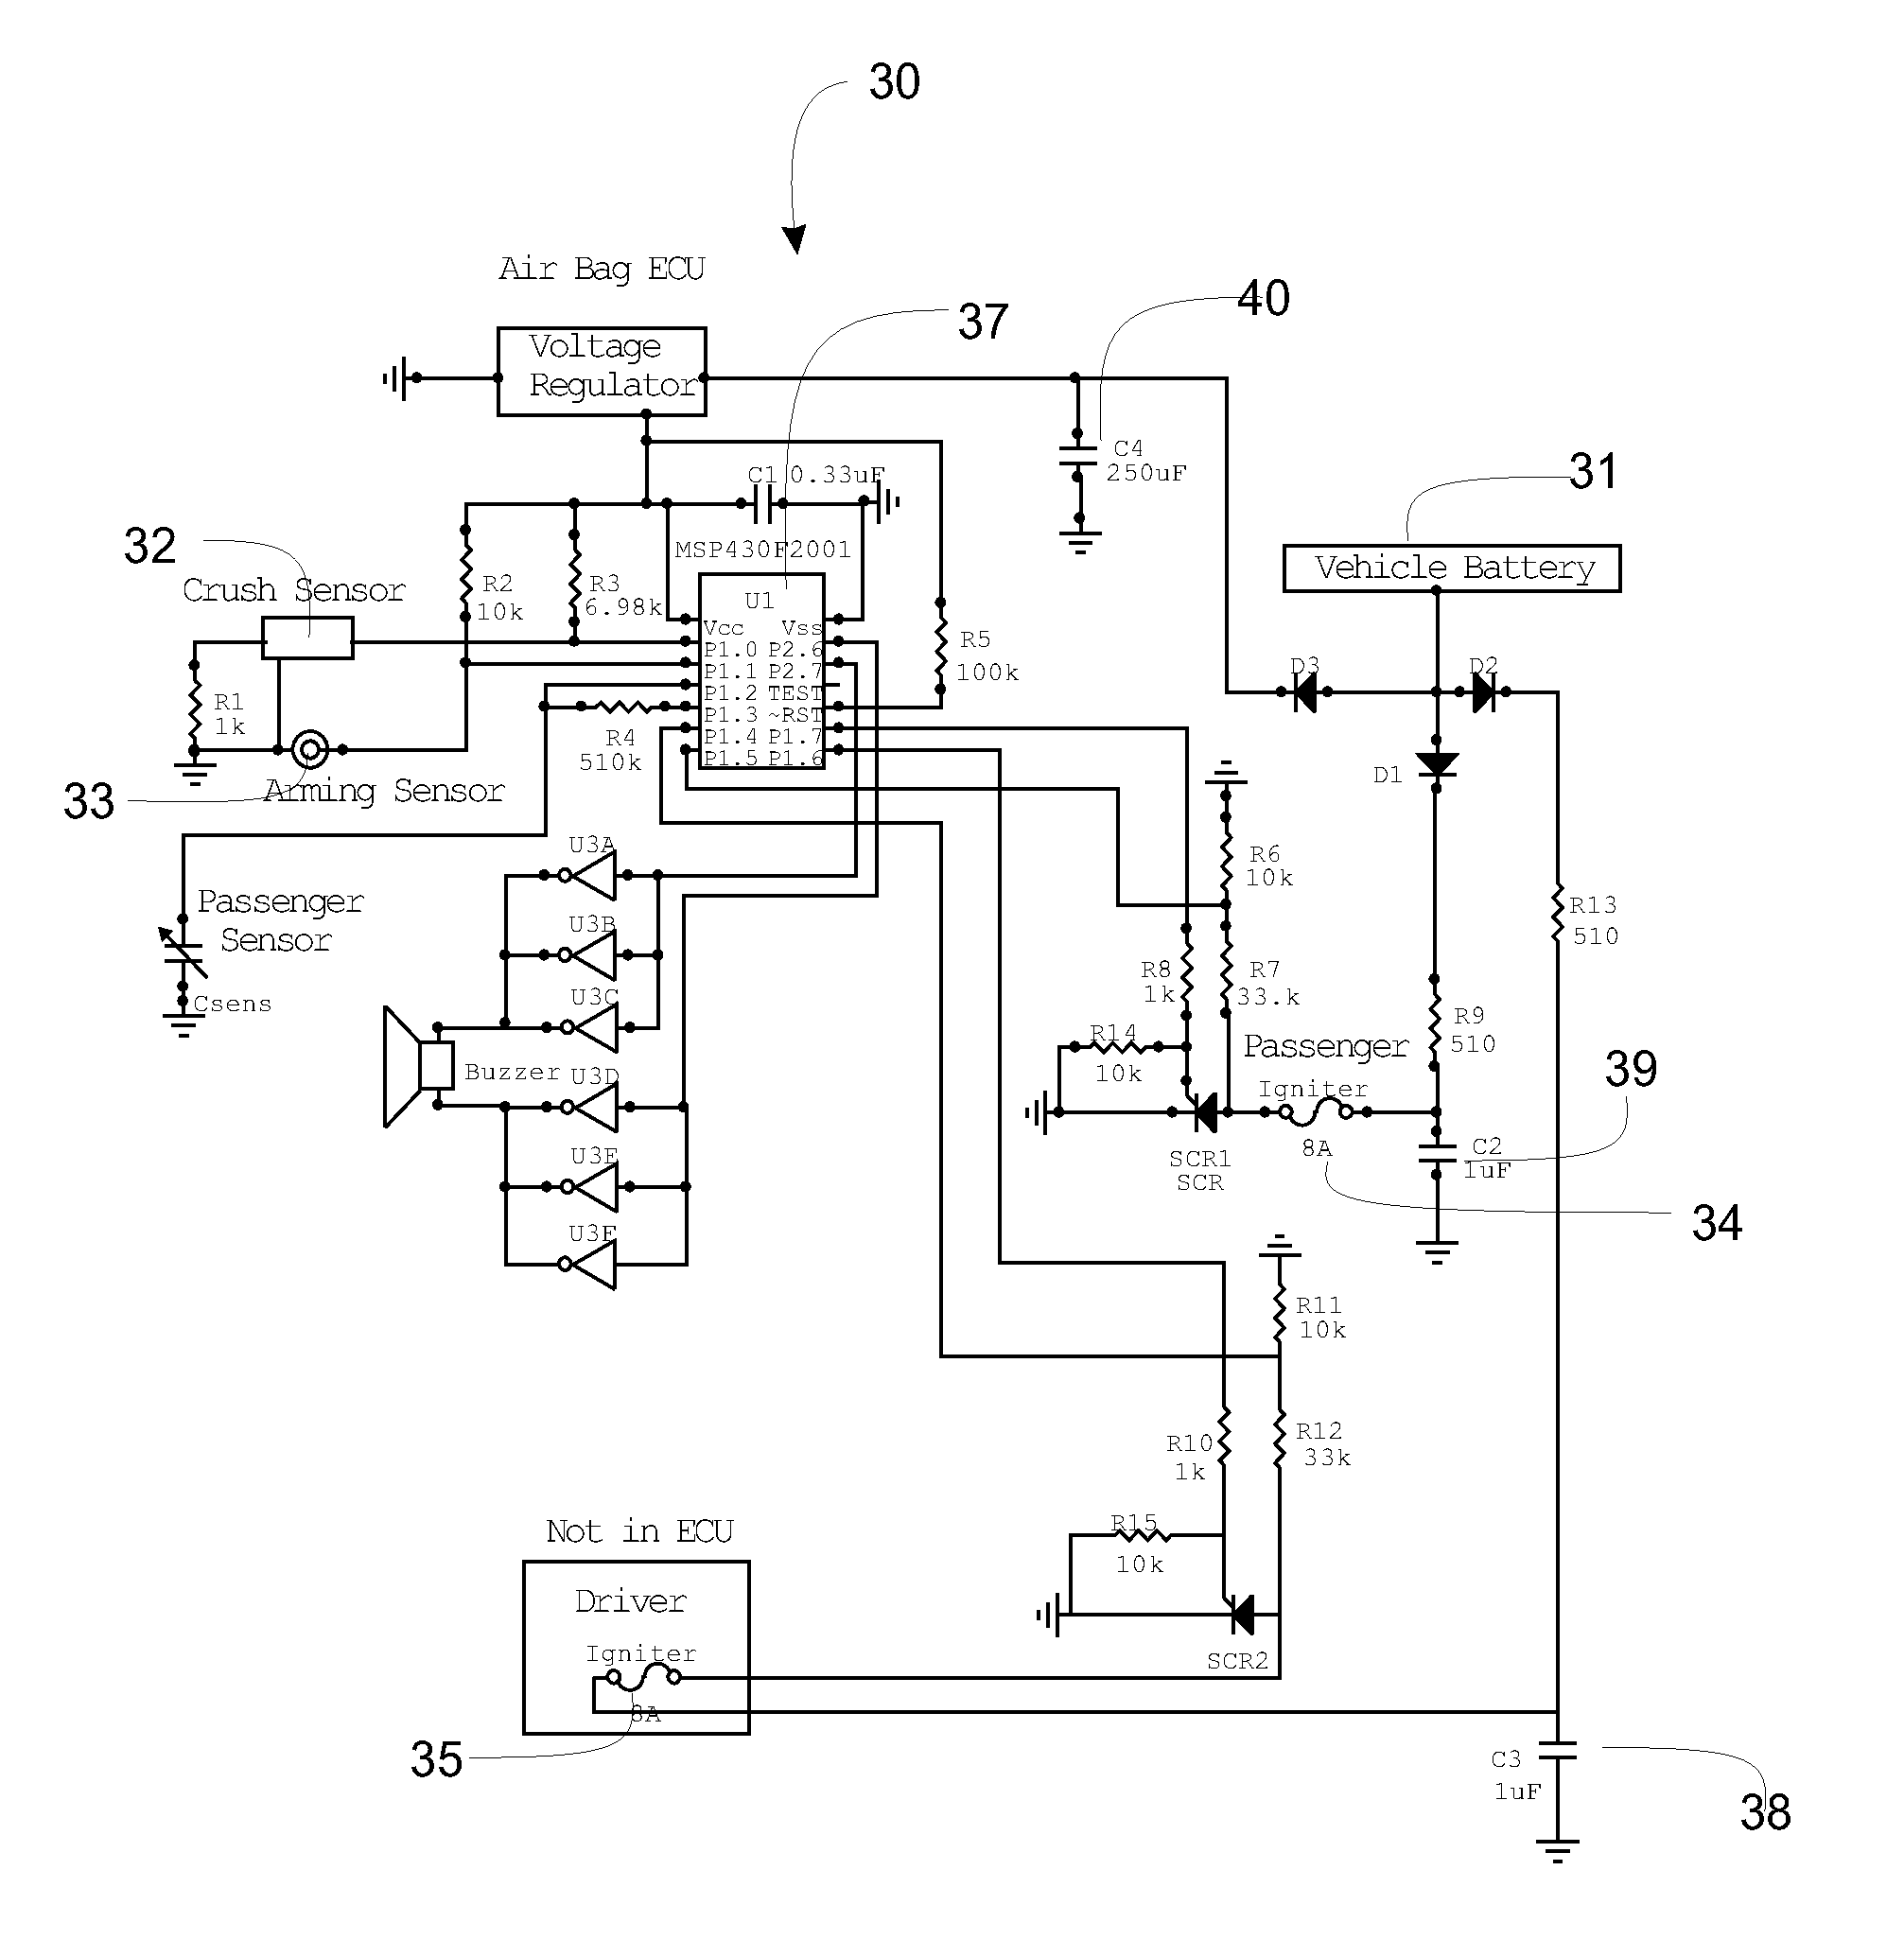 patent us20130062866 airbag system google patents patent drawing